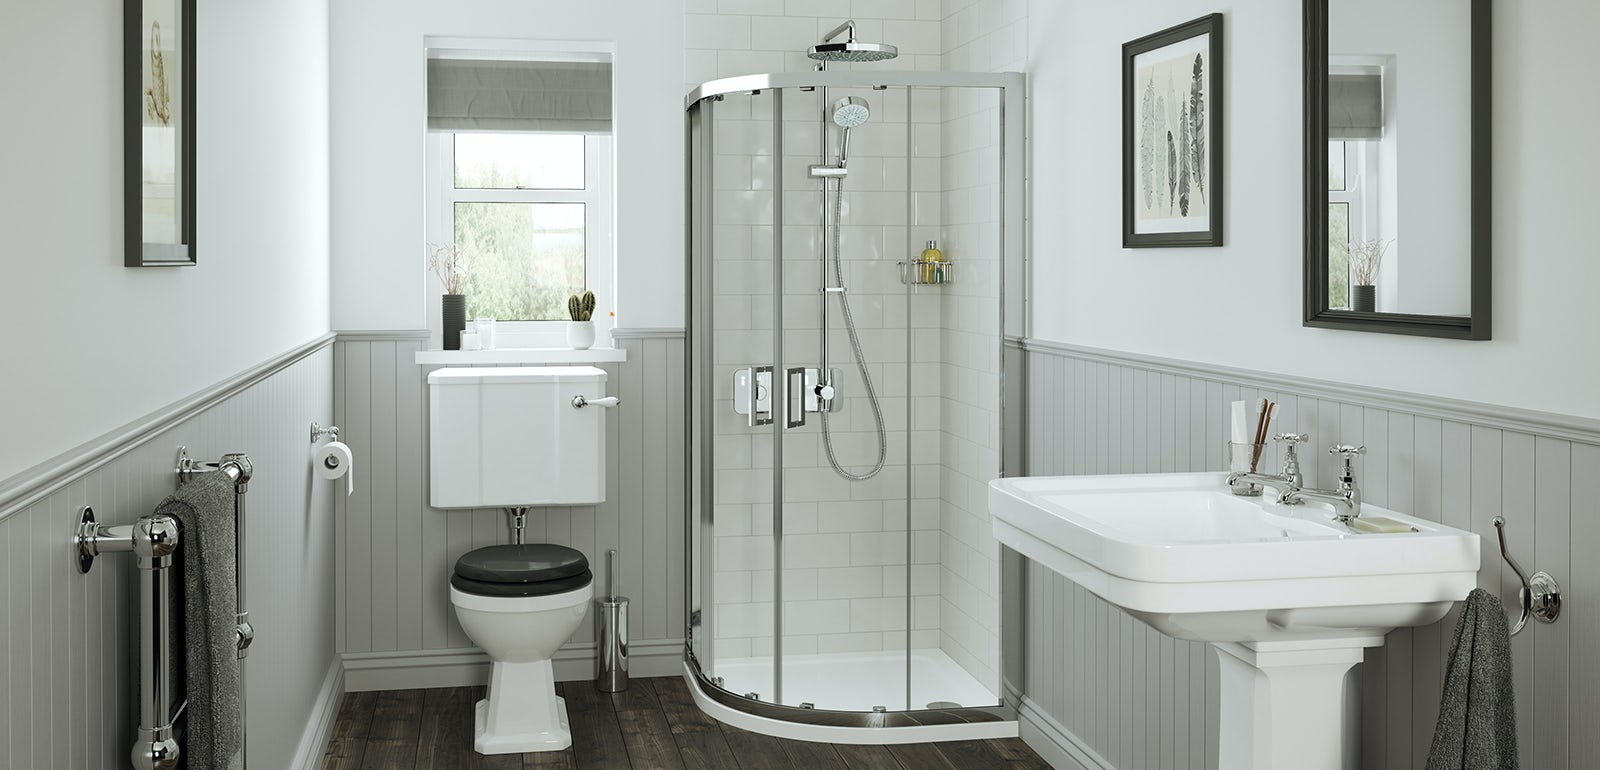 Incroyable Small Bathroom Solutions From Mira Showers